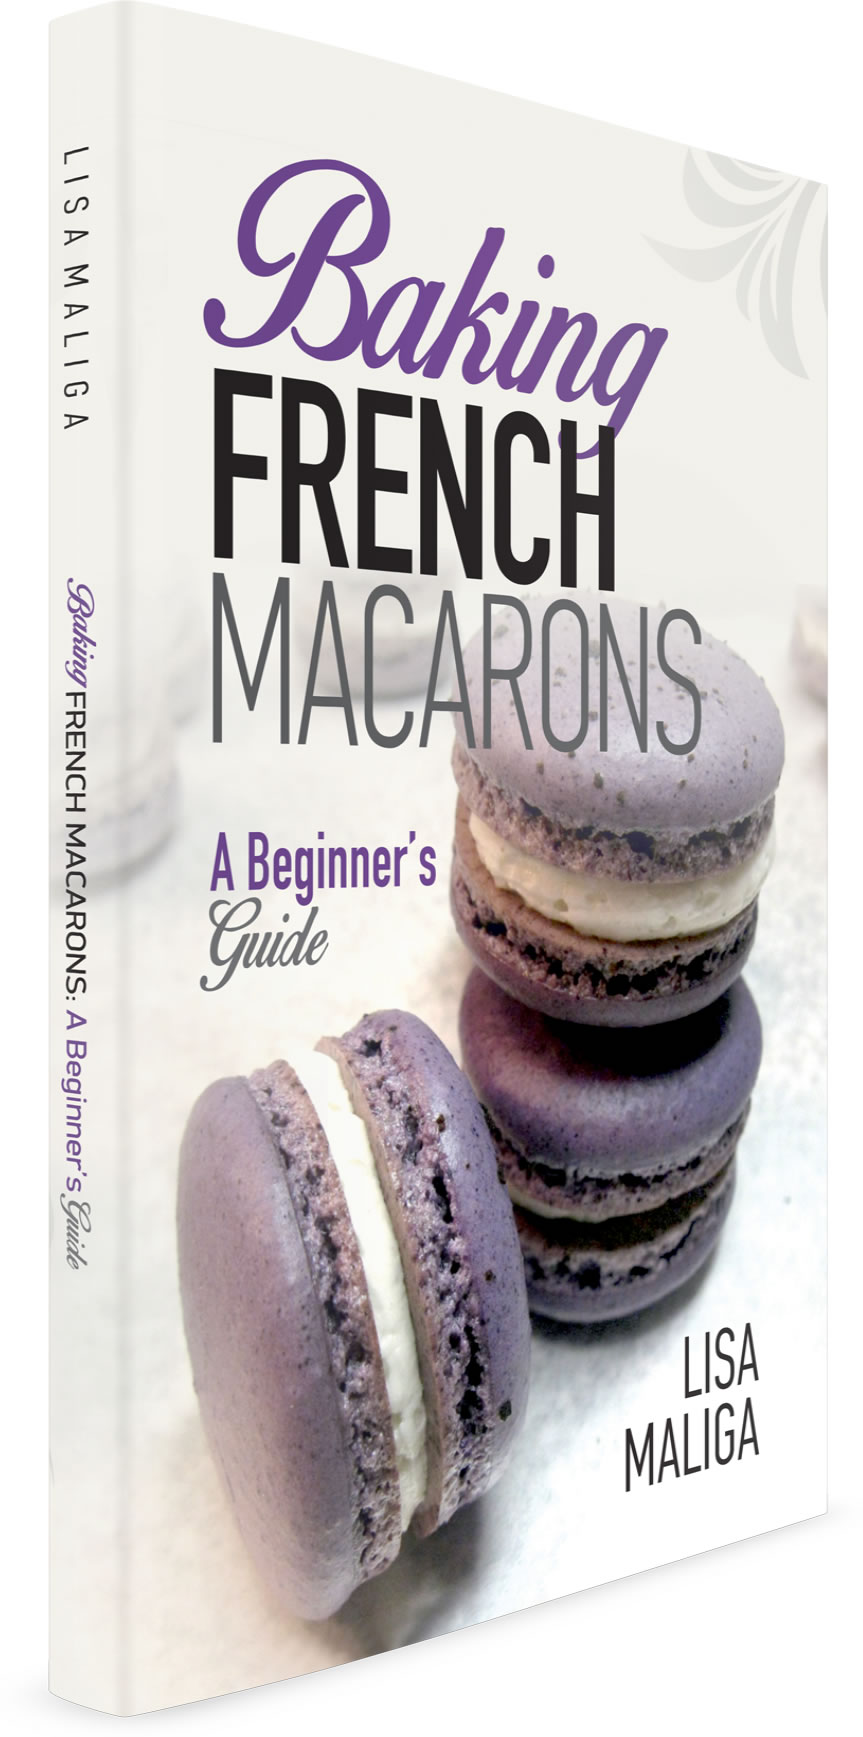 baking french macarons a beginner's guide by lisa maliga